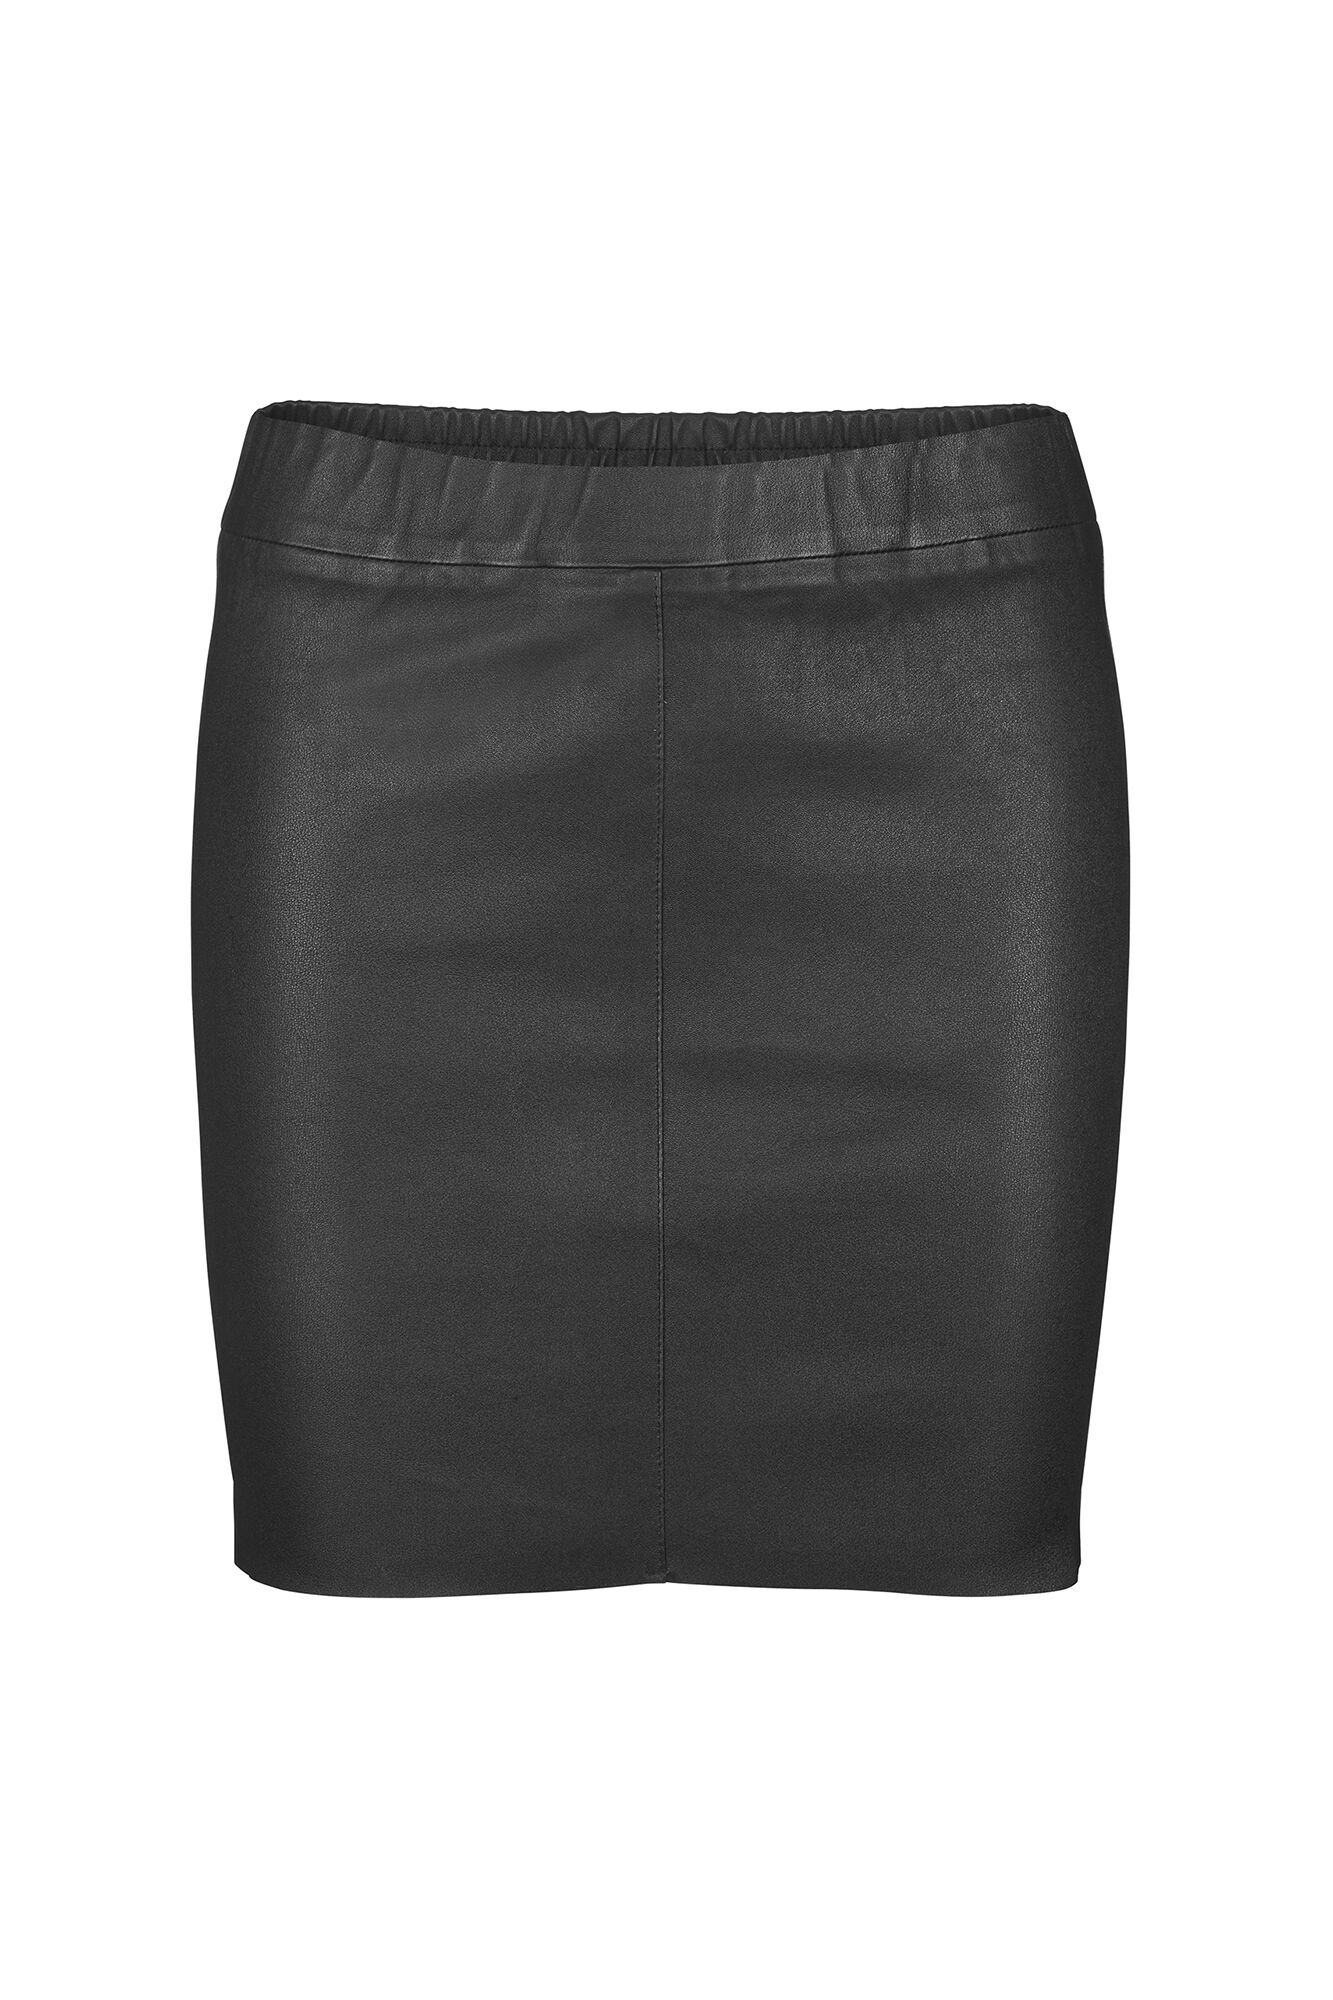 ENLEON SKIRT 6401, BLACK